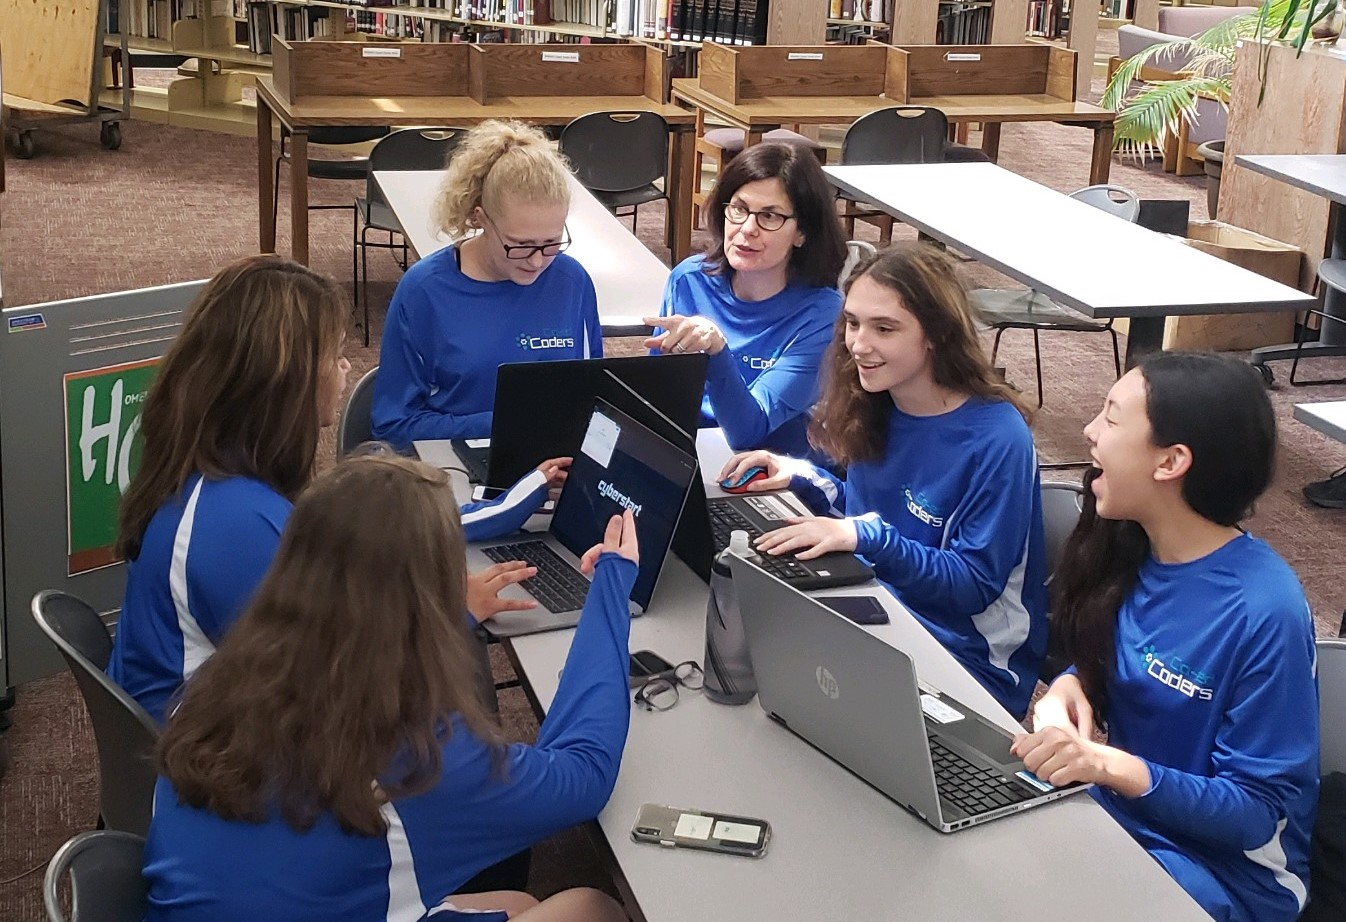 Girls from the Co-ed Coders club, working with adviser Ms. Pagano, make their way to nationals of the Girls Go CyberStart competition.